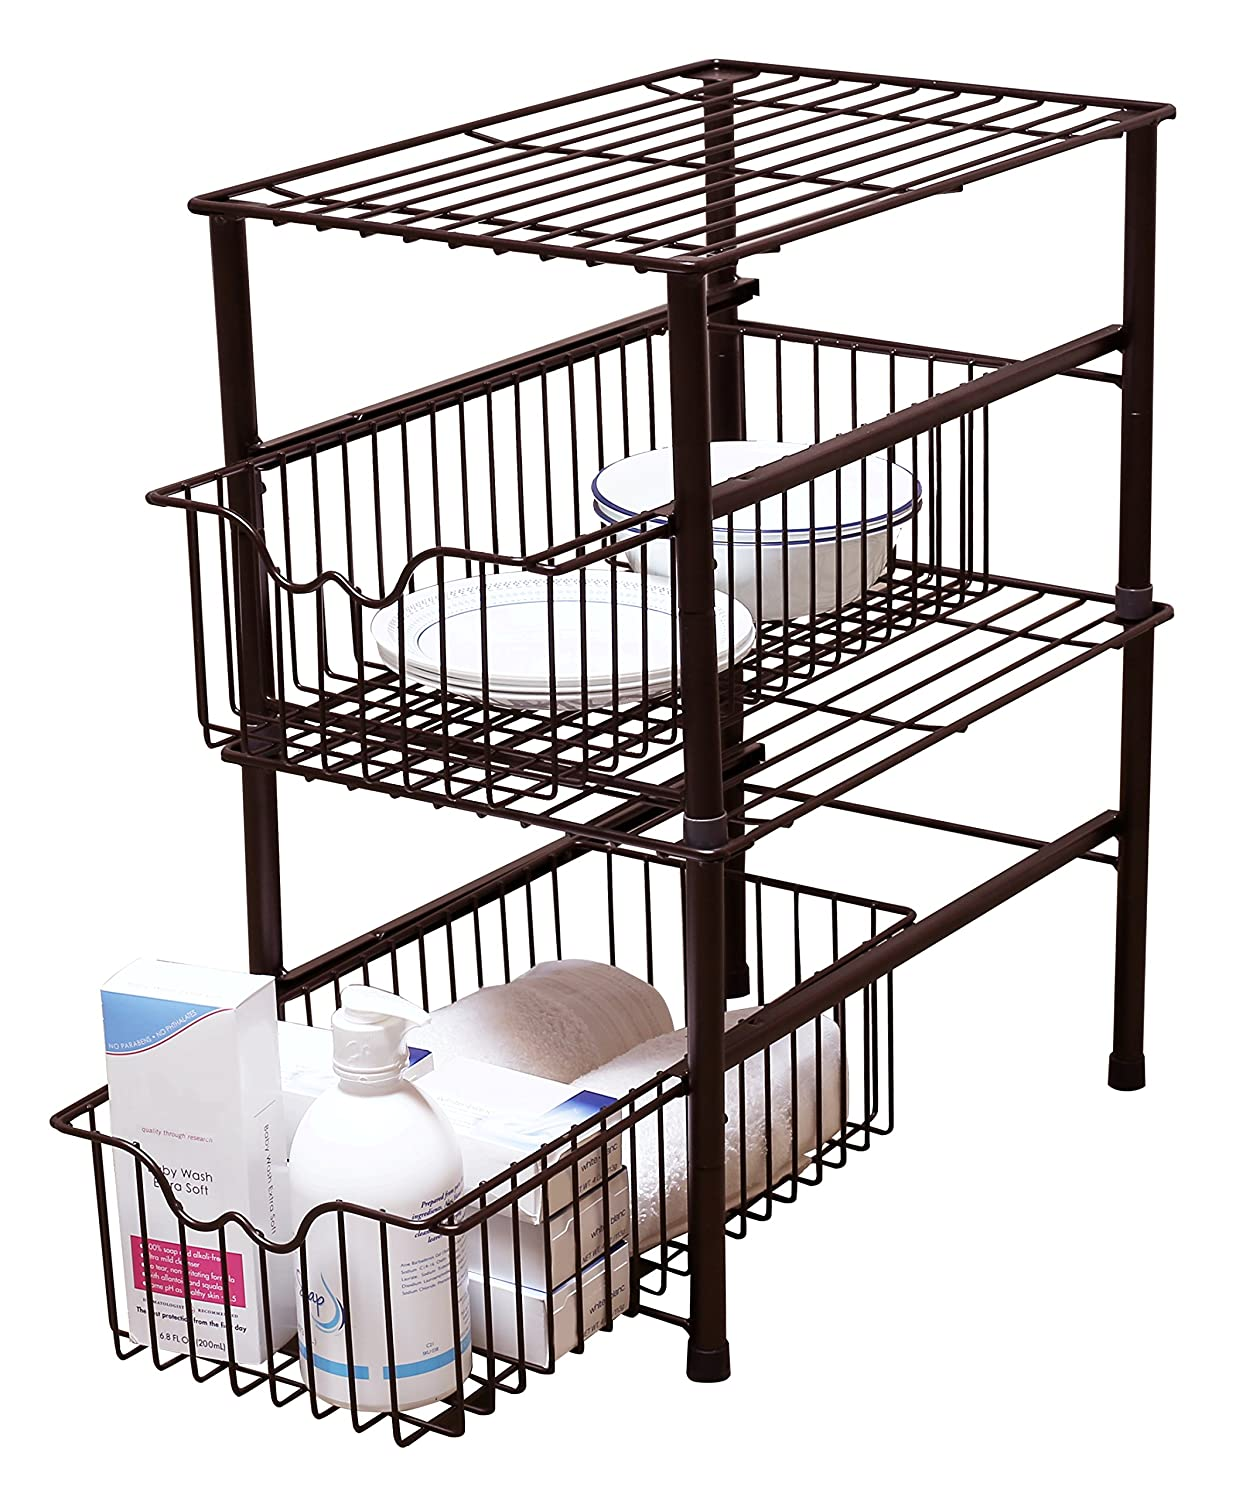 Uncategorized Sliding Basket Organizer amazon com decobros stackable under sink cabinet sliding basket organizer drawerbronze kitchen dining